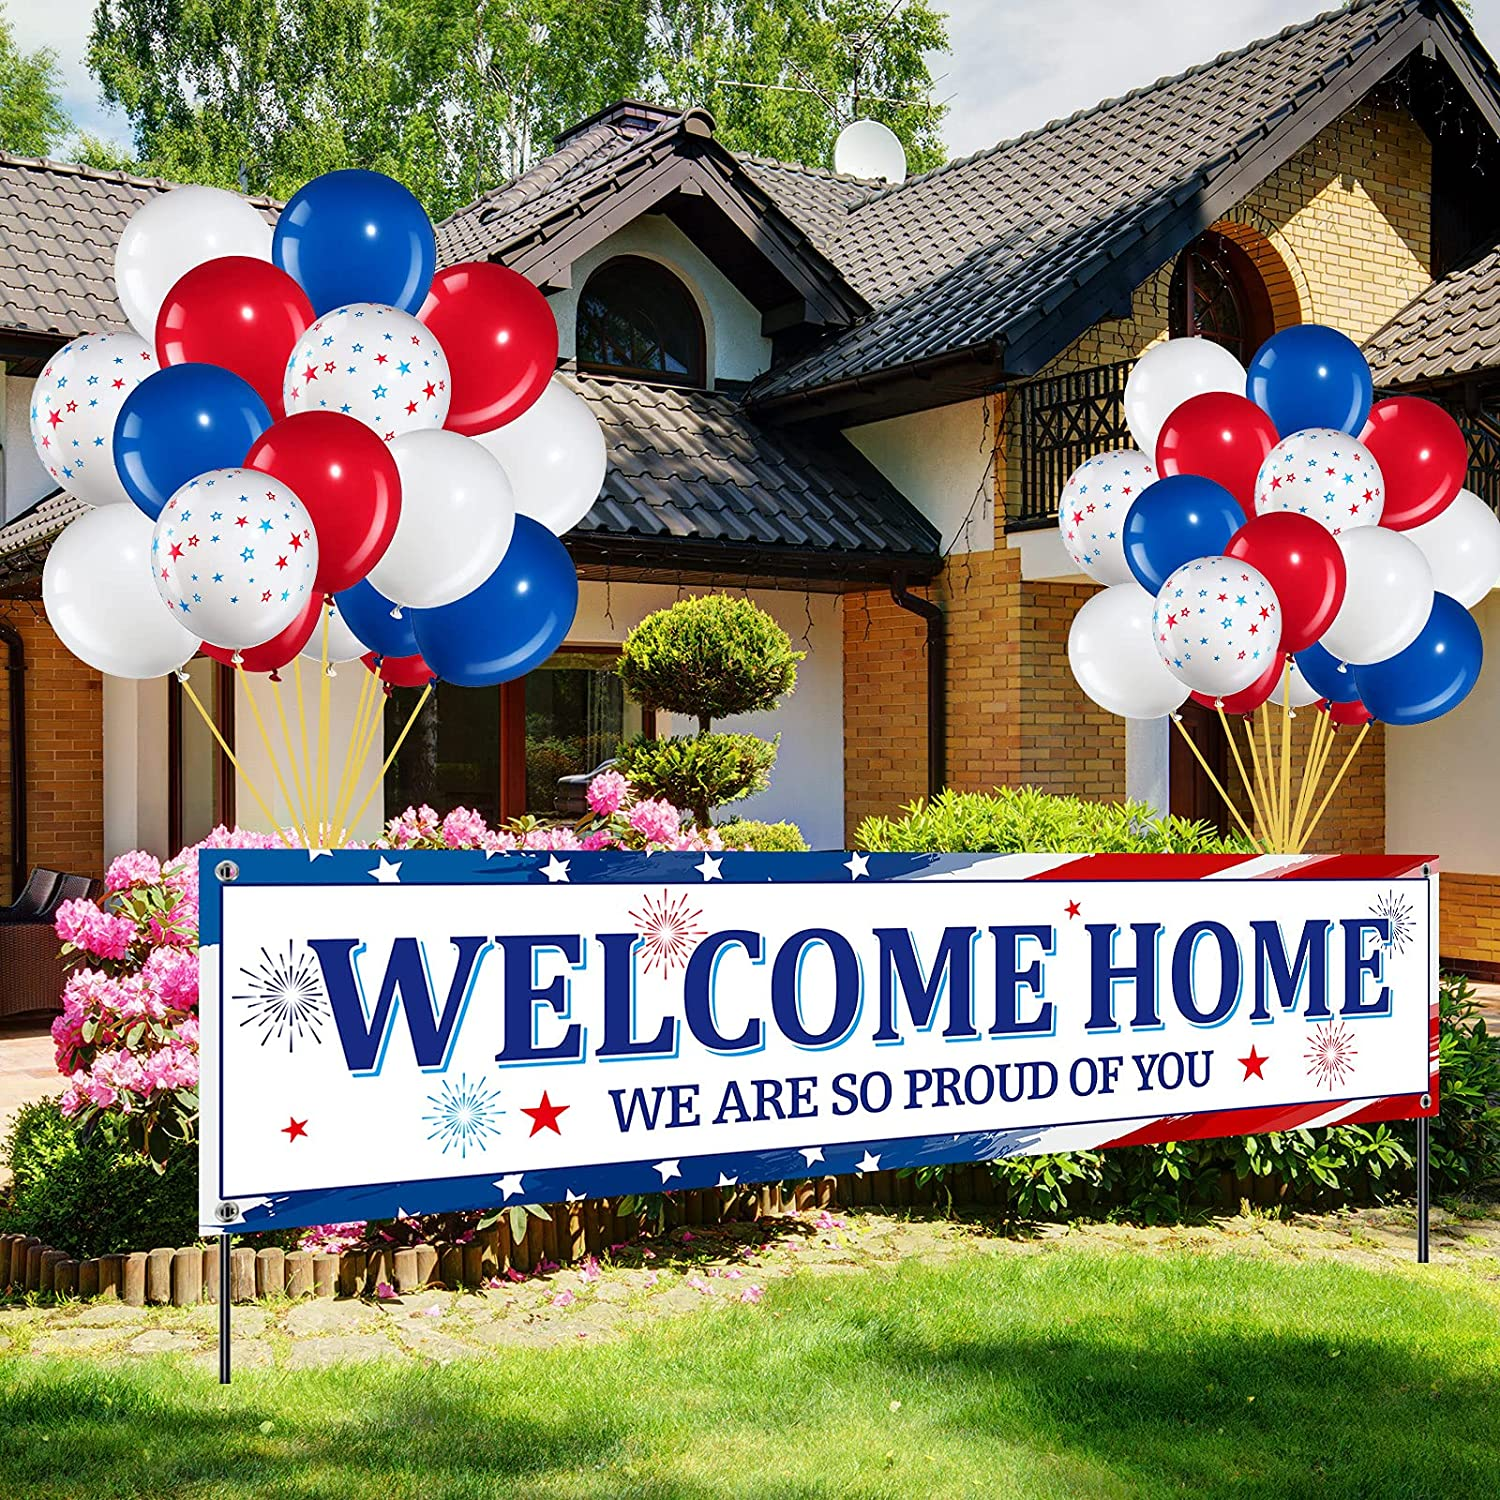 36 Pieces Welcome Home Banner Decoration Set, Large Fabric We are So Proud of You Banner with 35 Pieces Latex Balloons for Deployment Returning Party Supplies and Military Army Homecoming Party Decor